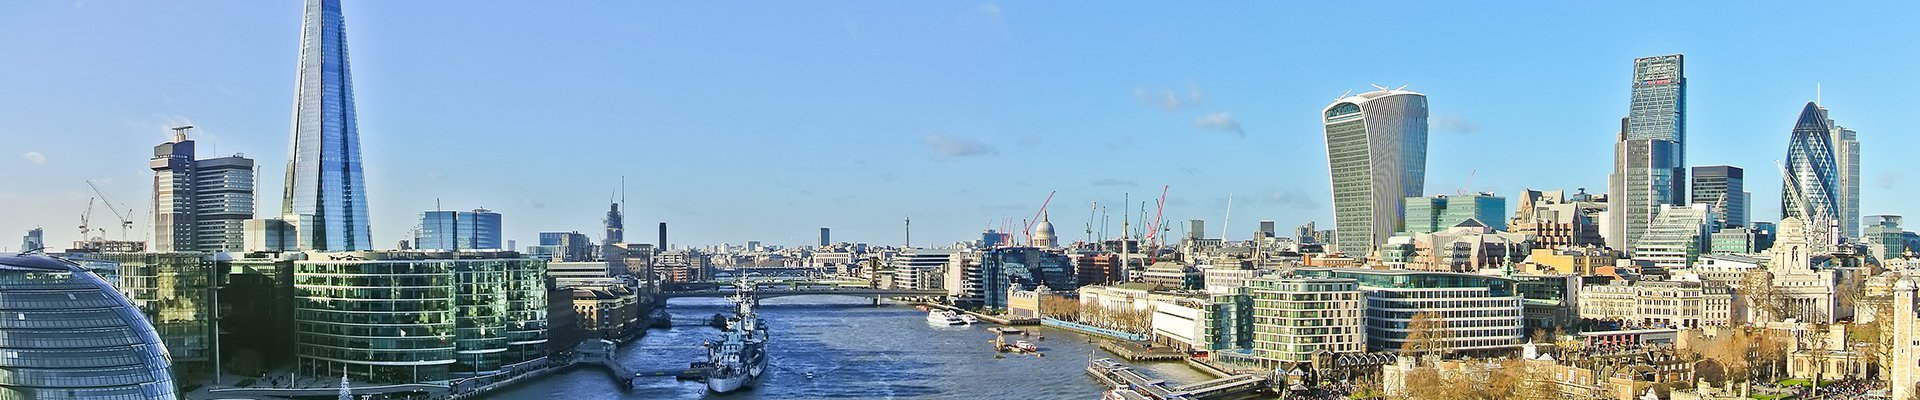 london skyline during the day